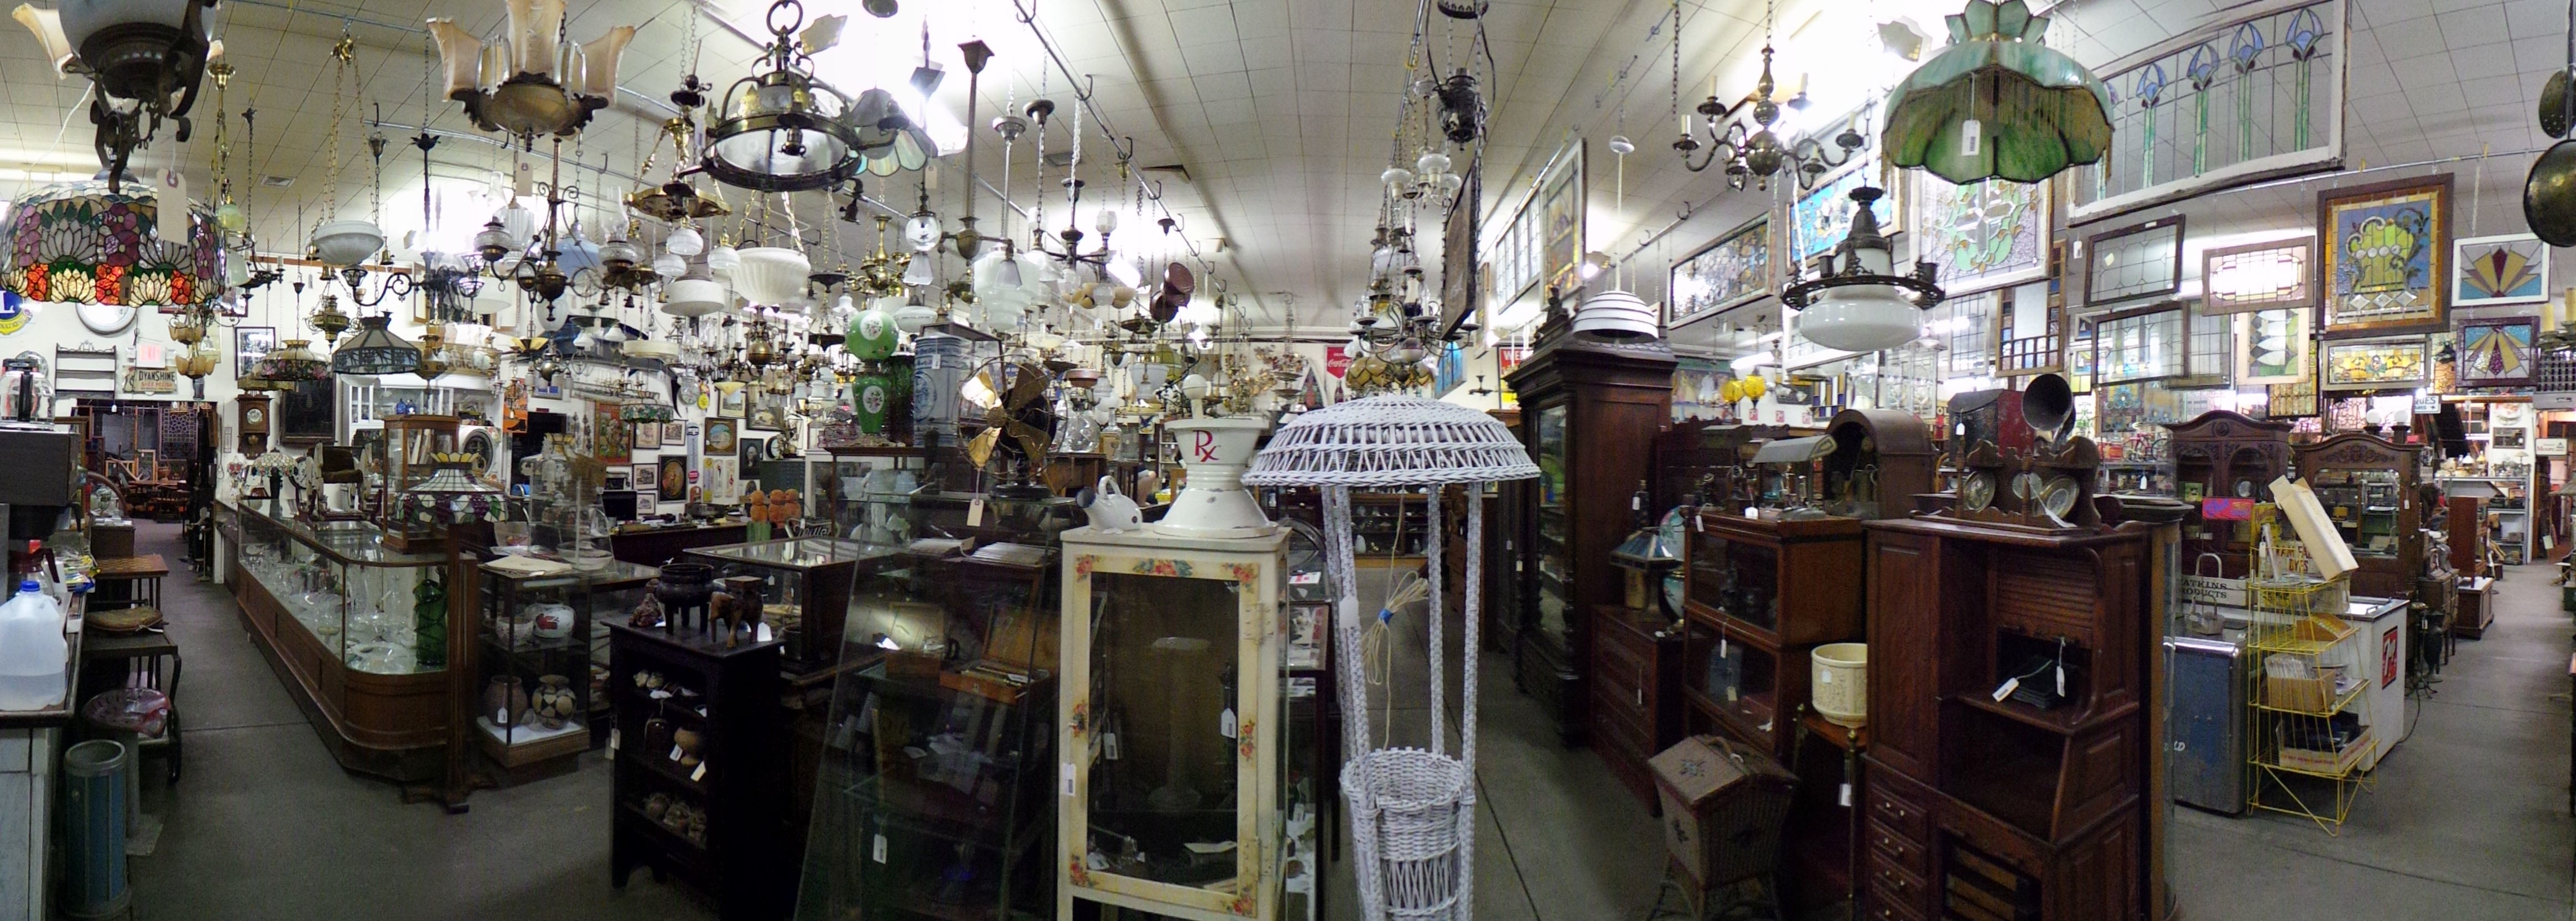 Old town architectural salvage coupons near me in wichita for Architectural salvage nyc